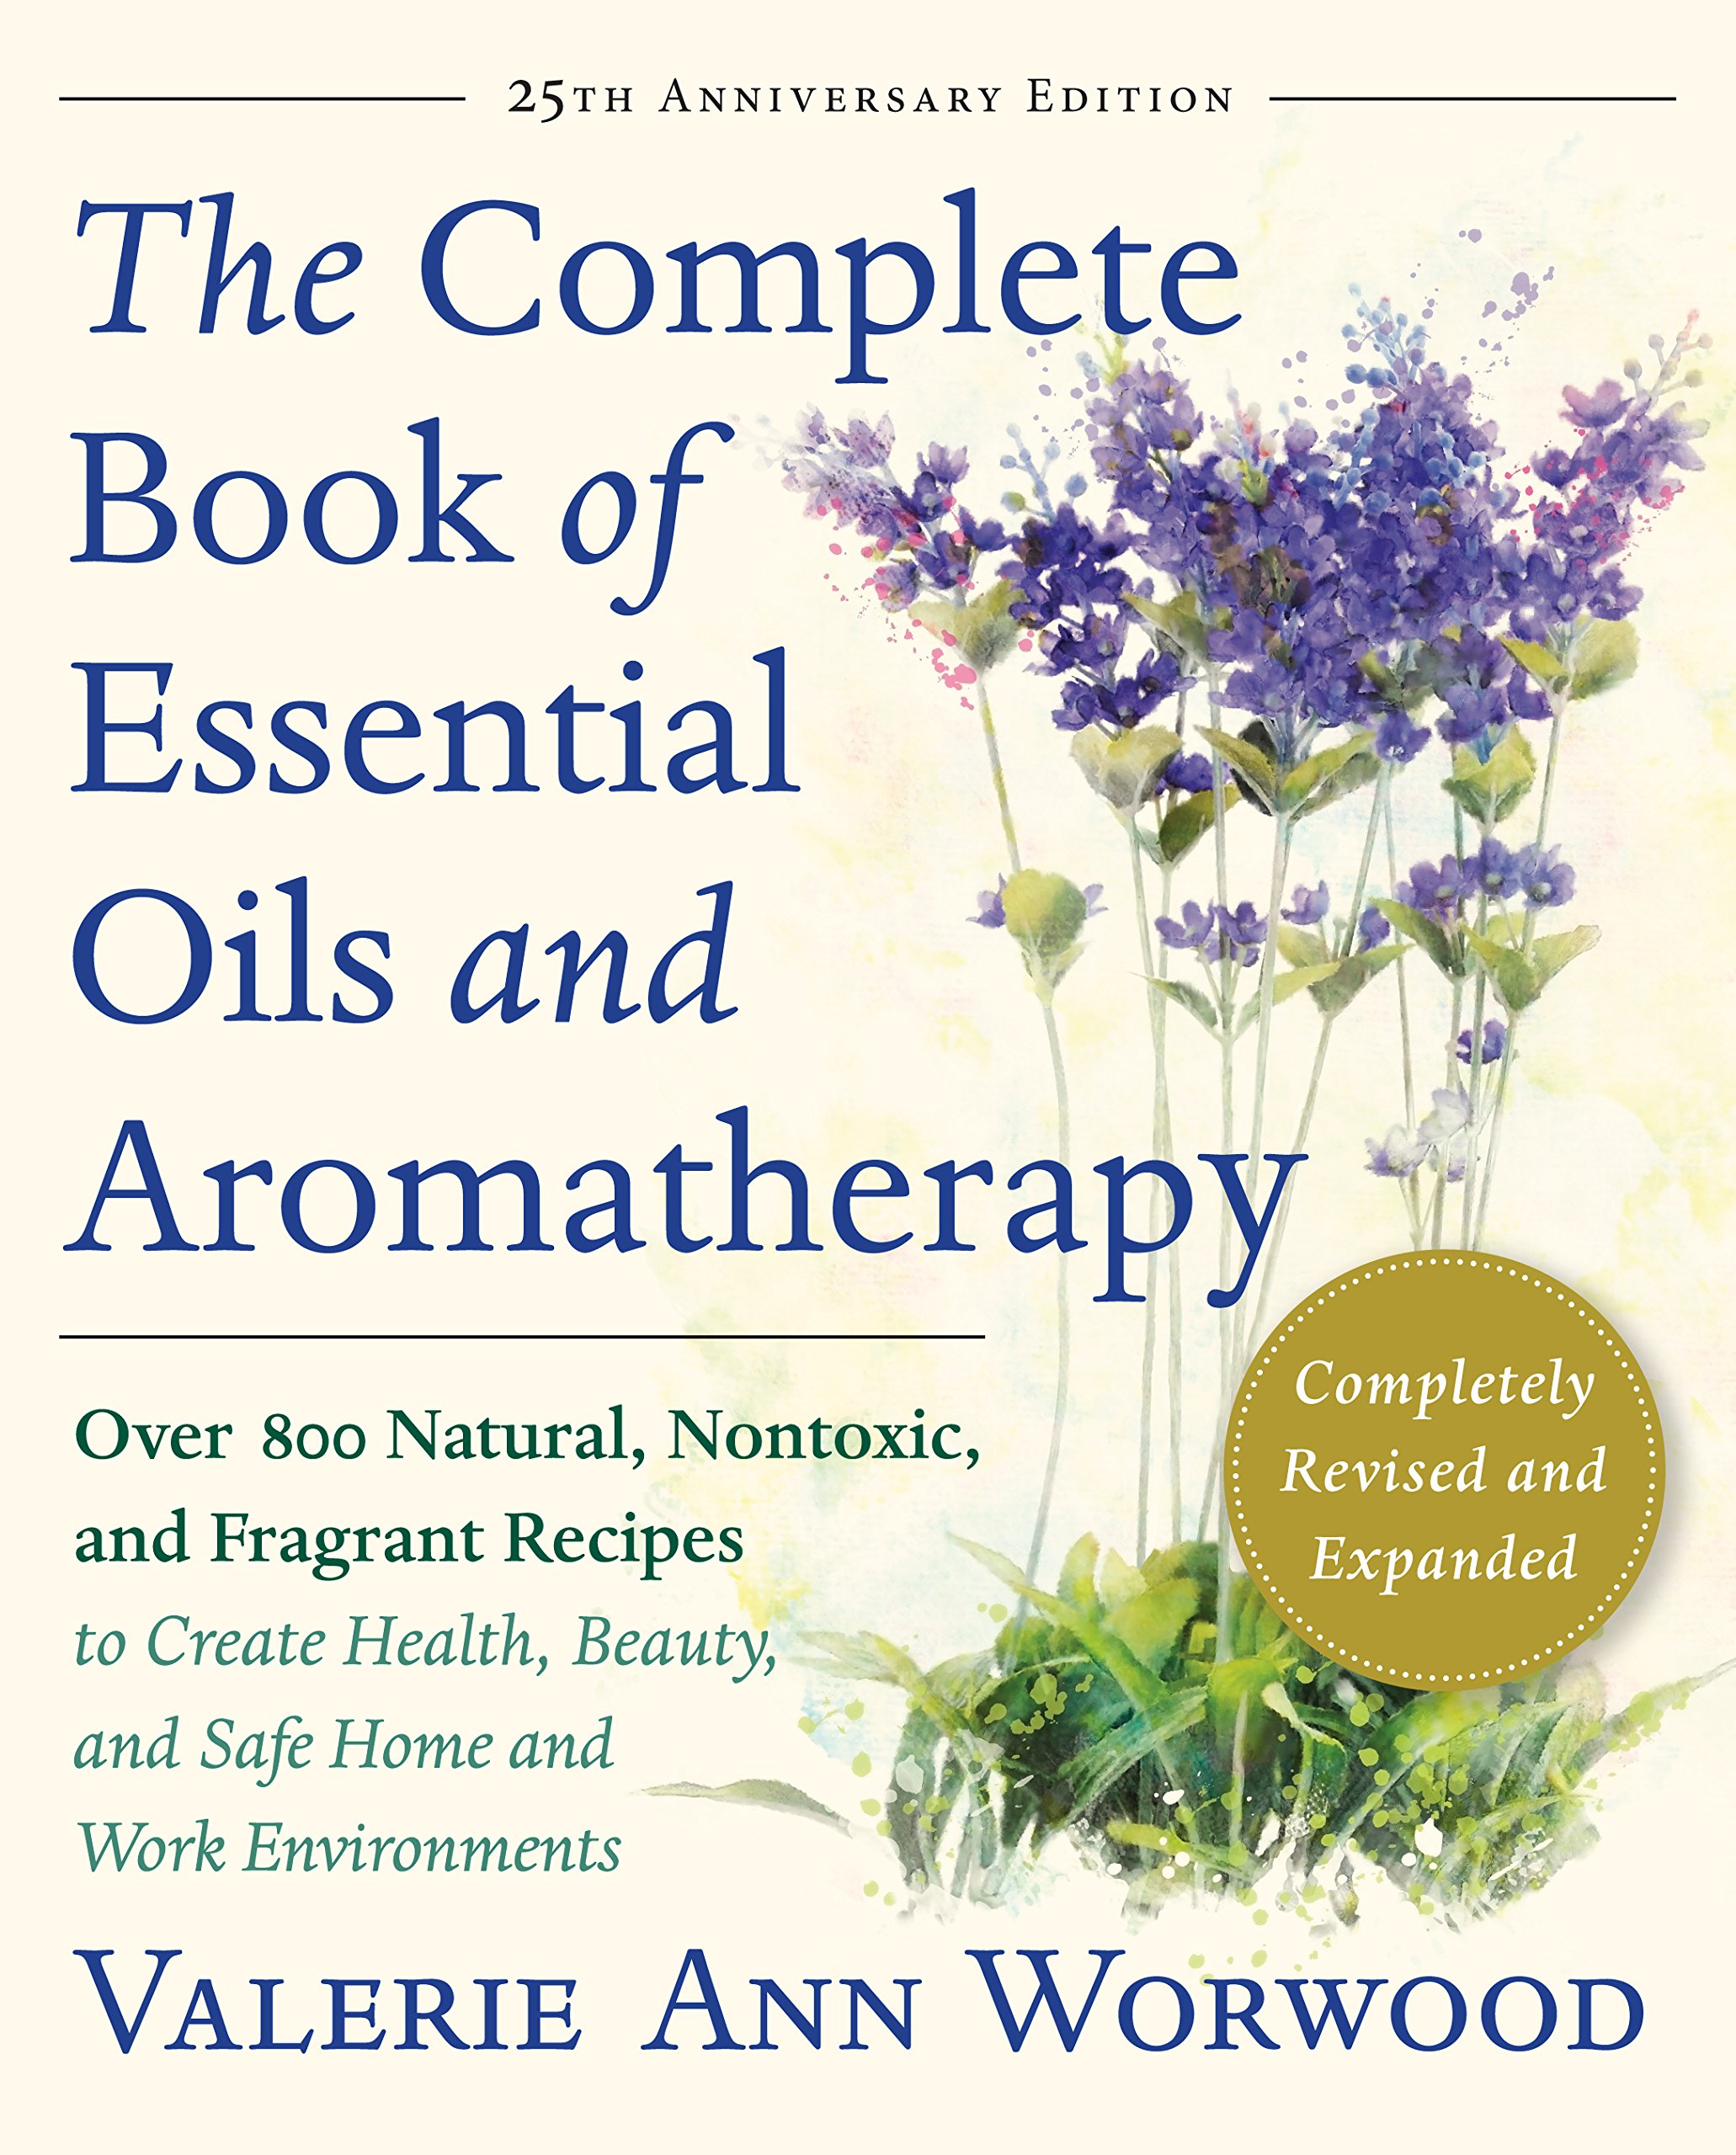 The Complete Book of Essential Oils and